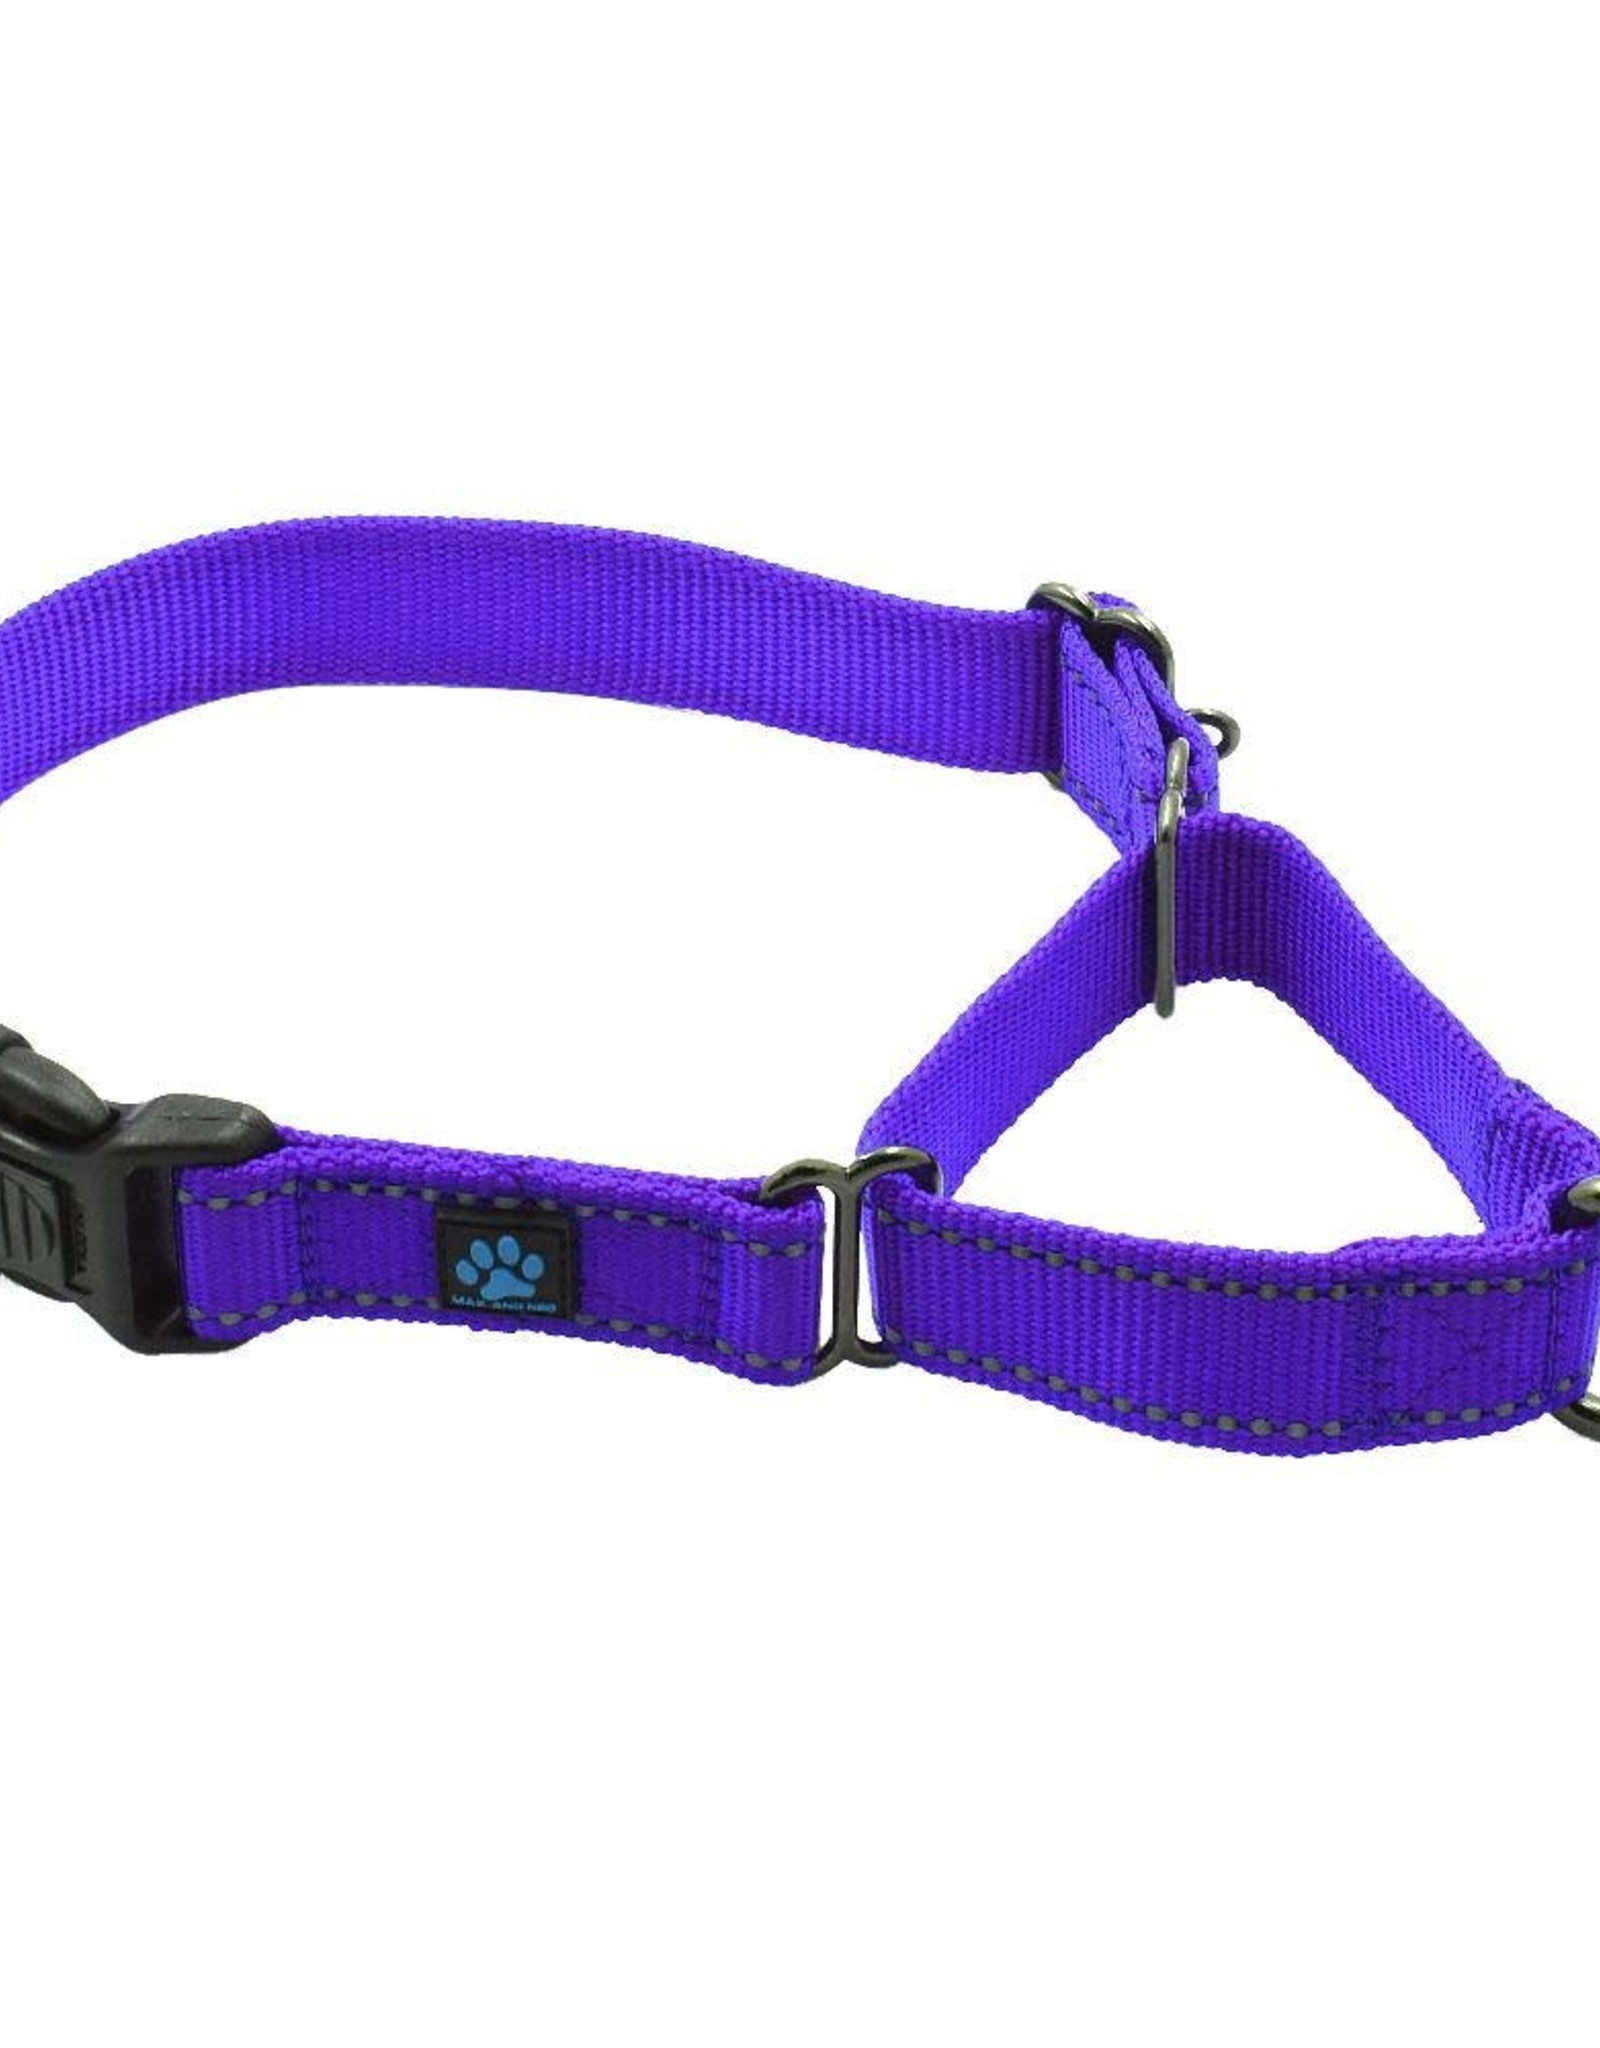 Max & Neo Max & Neo Collars - XS Purple Martingale